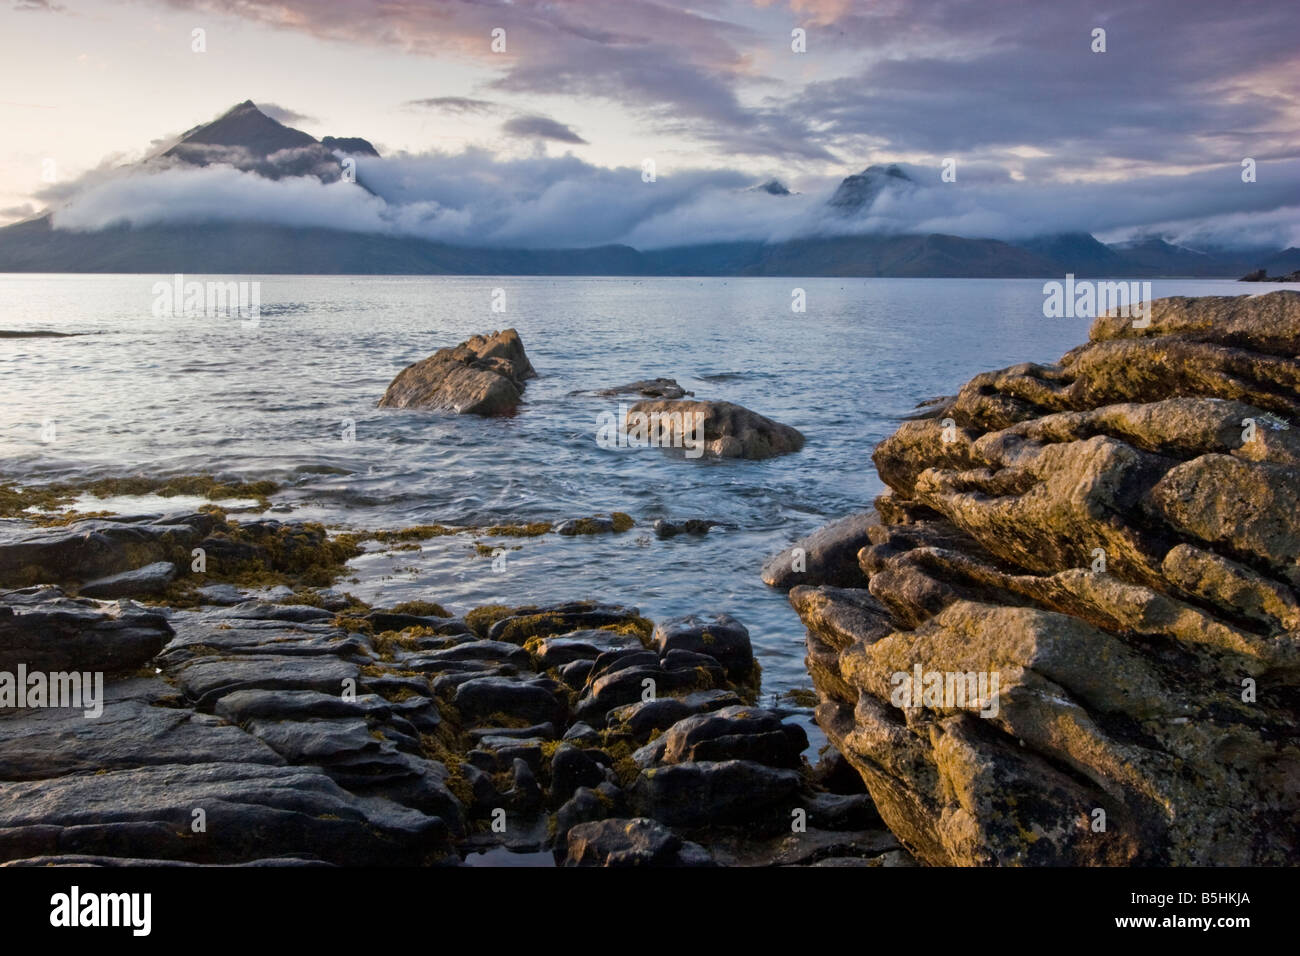 Elgol is a small village on the West coast of Skye, with stunnig views over to the Black Cuillin mountains. Stock Photo